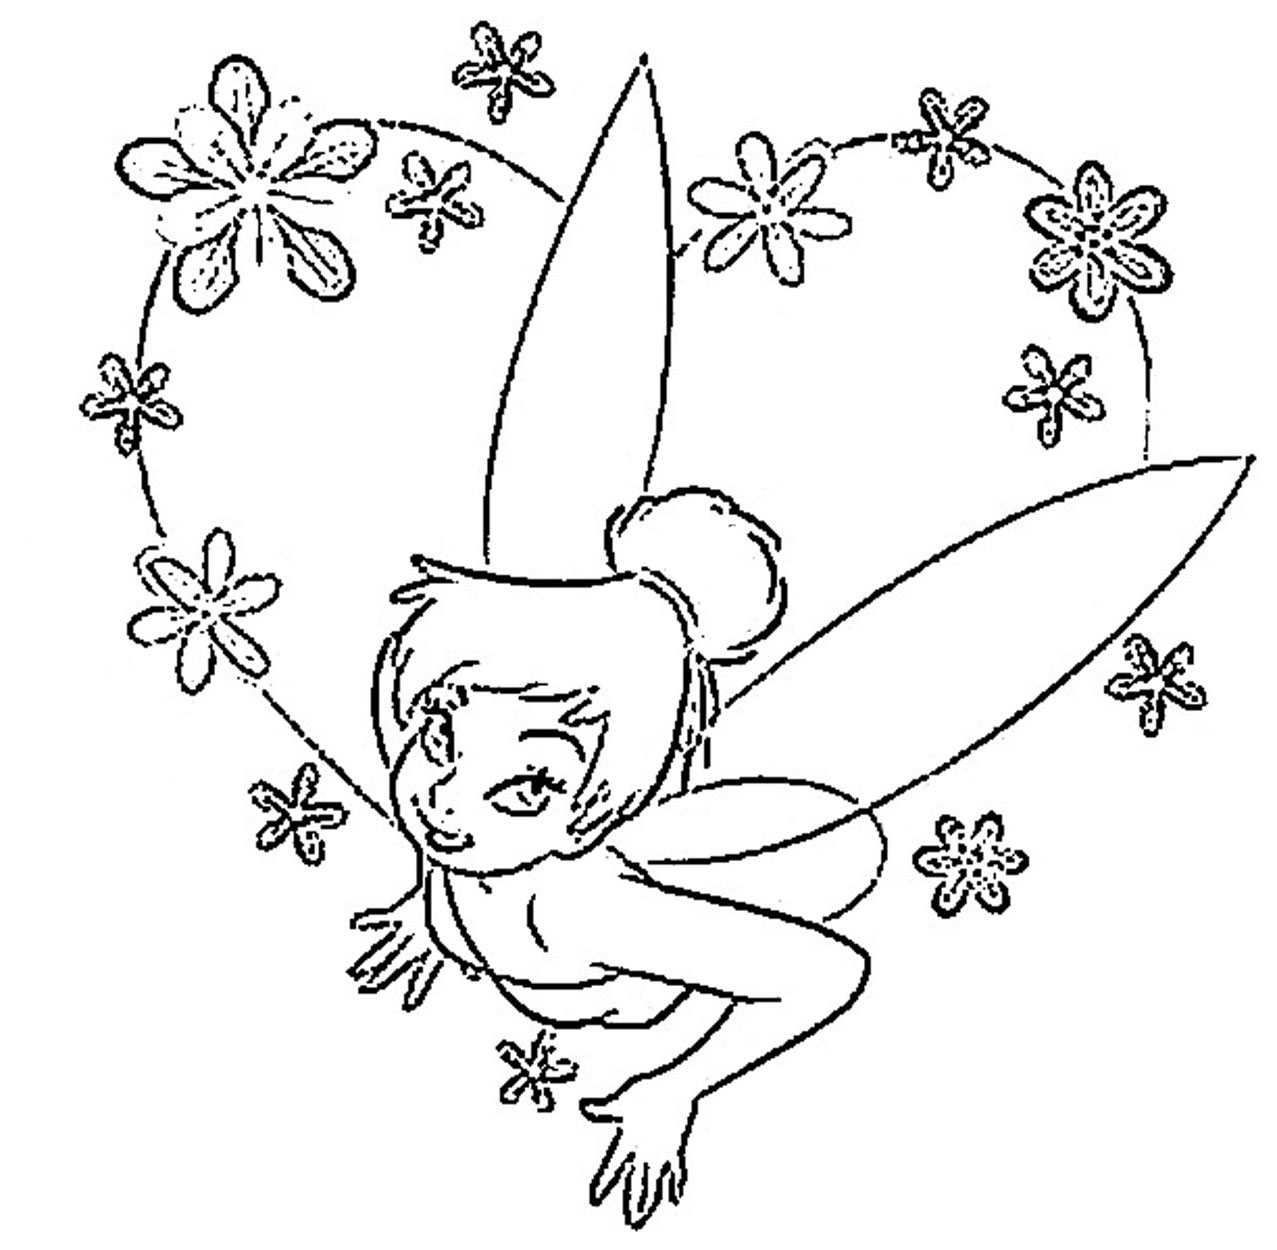 Tinker bell coloring pages to download and print for free for Immagini peter pan da colorare